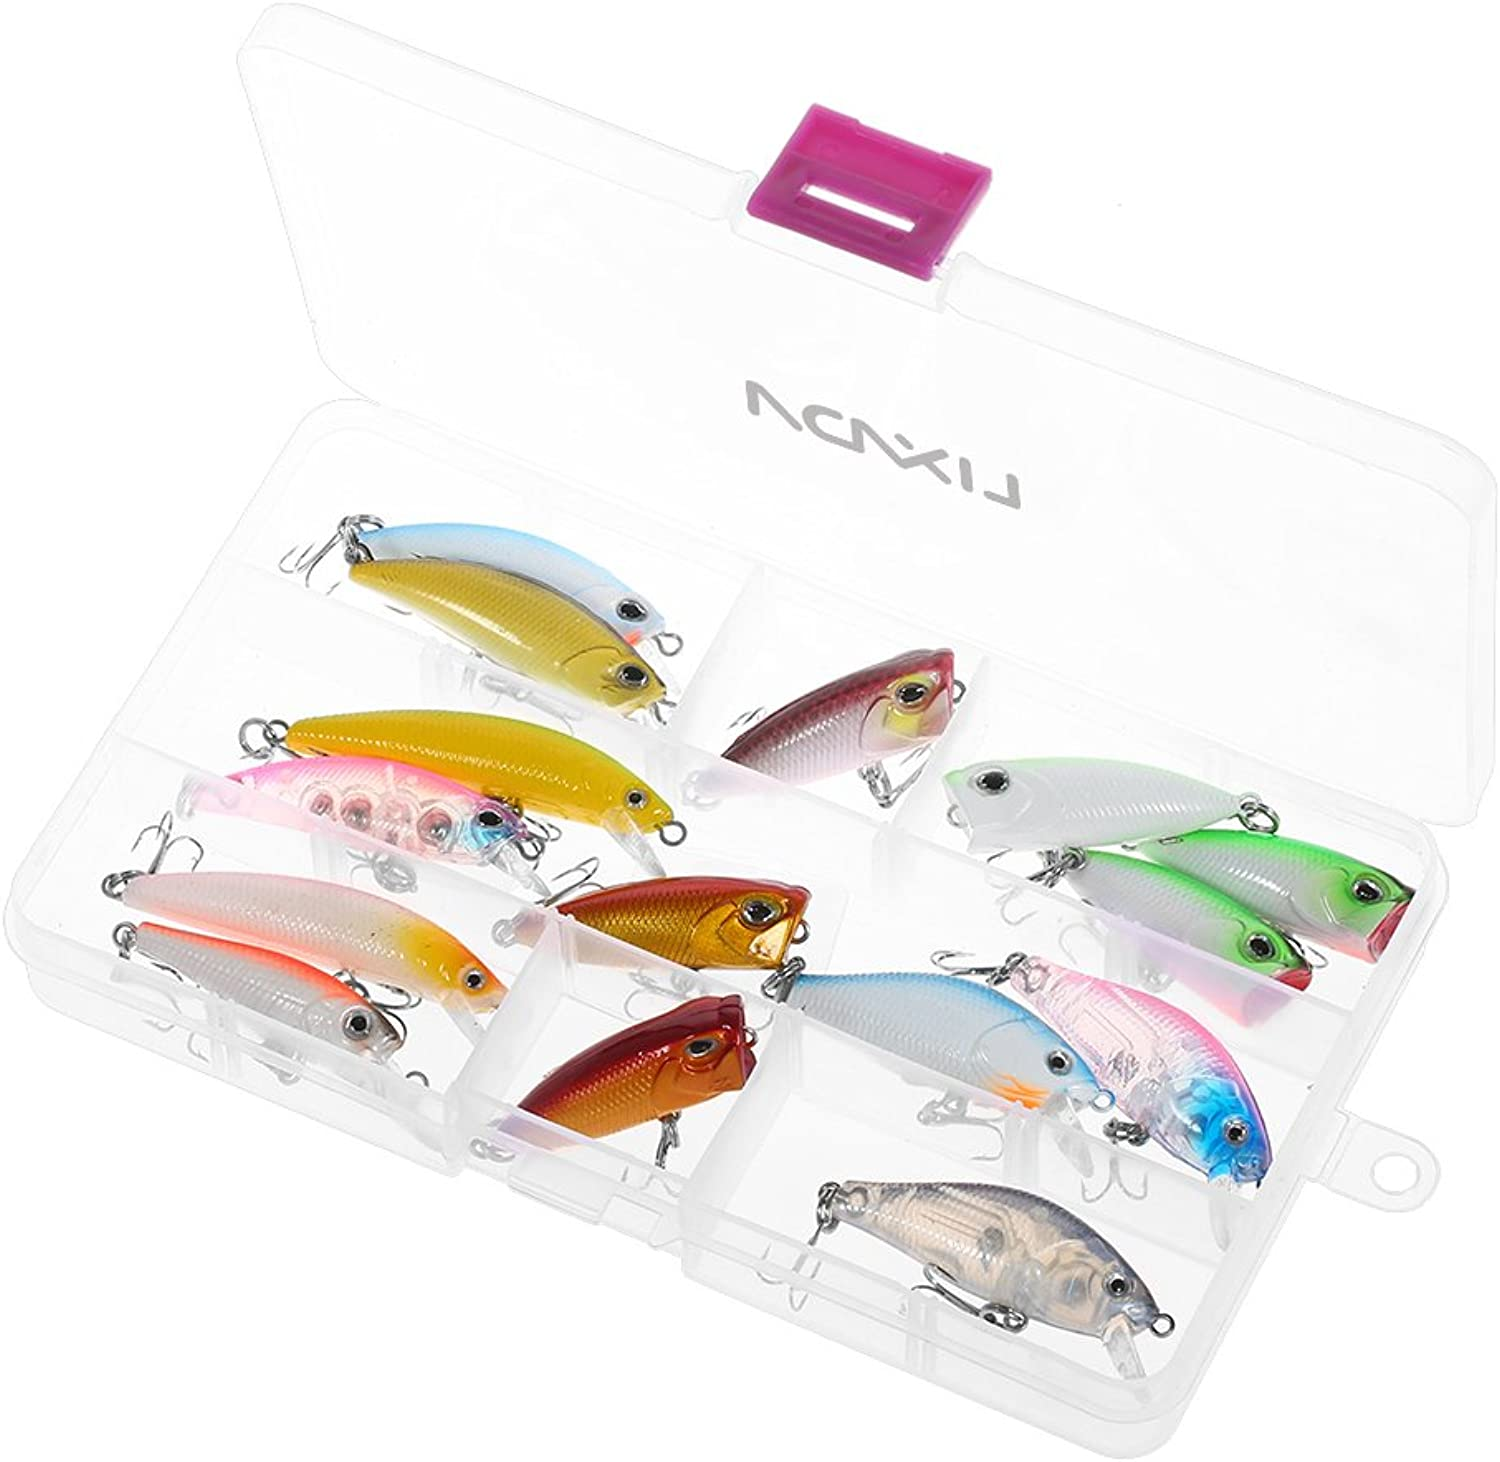 Generic Lixada 16 PCS Fishing Lure Set Minnow Hard Lure 3D Simulation Bait VIB Bait Popper Crank Bait Treble Hook Builtin Beads Y6572